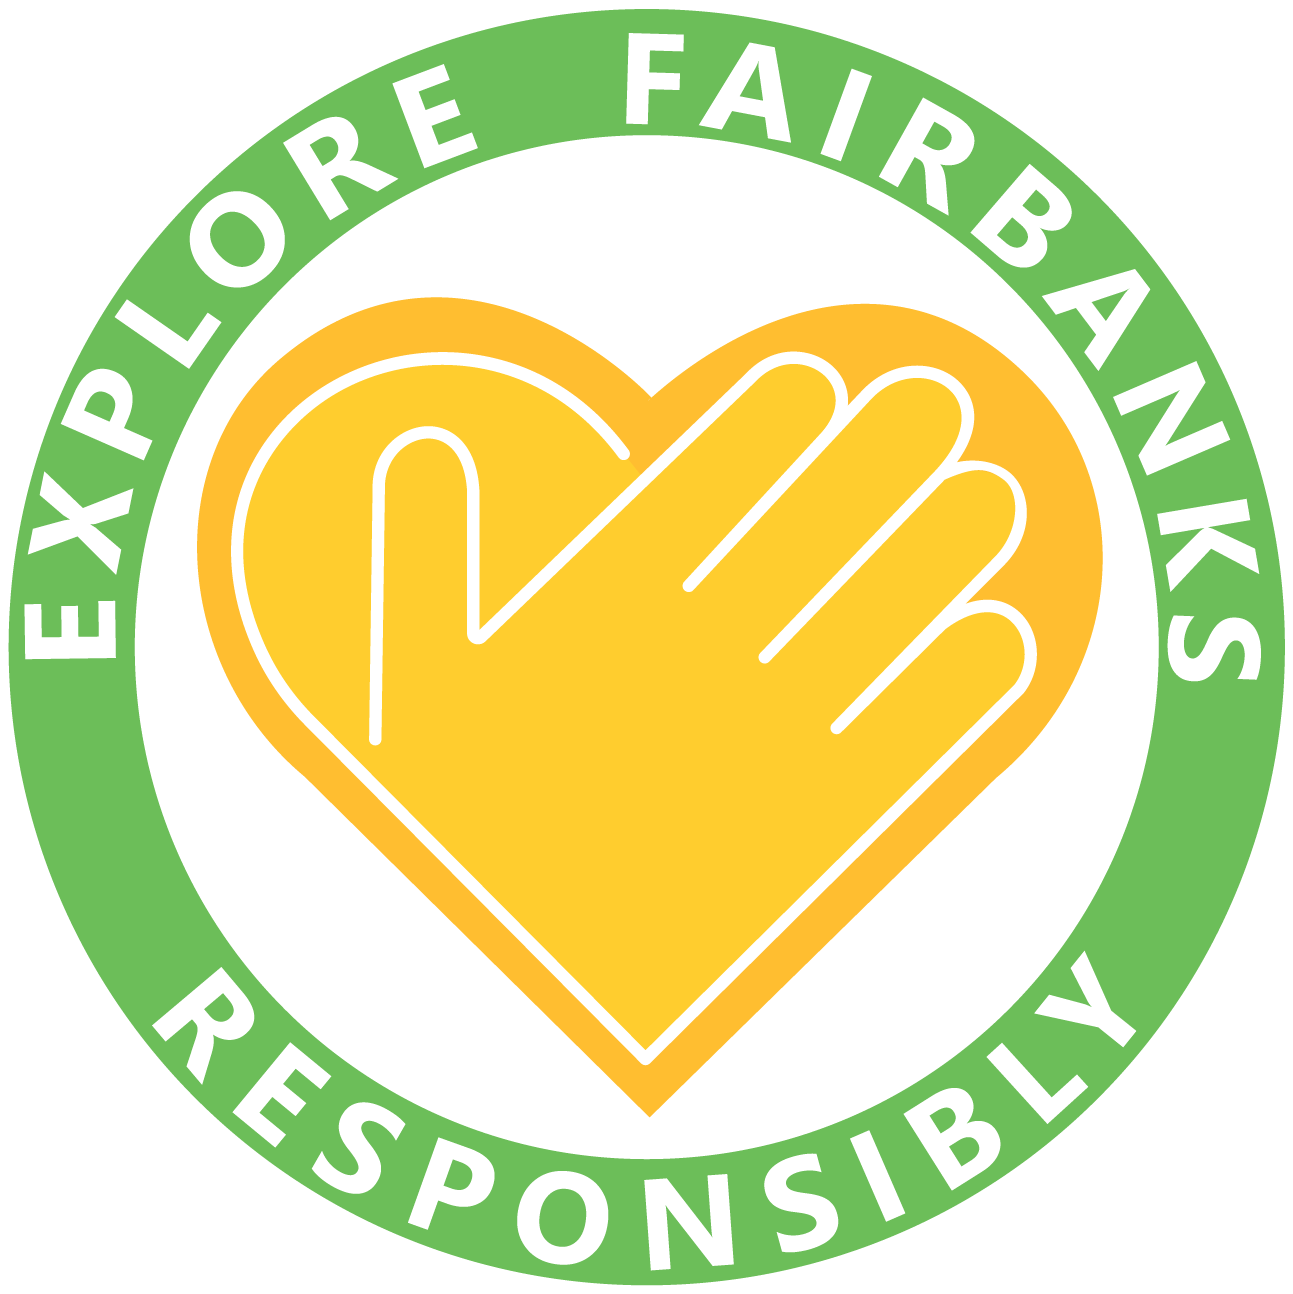 Pledge Logo - Explore Fairbanks